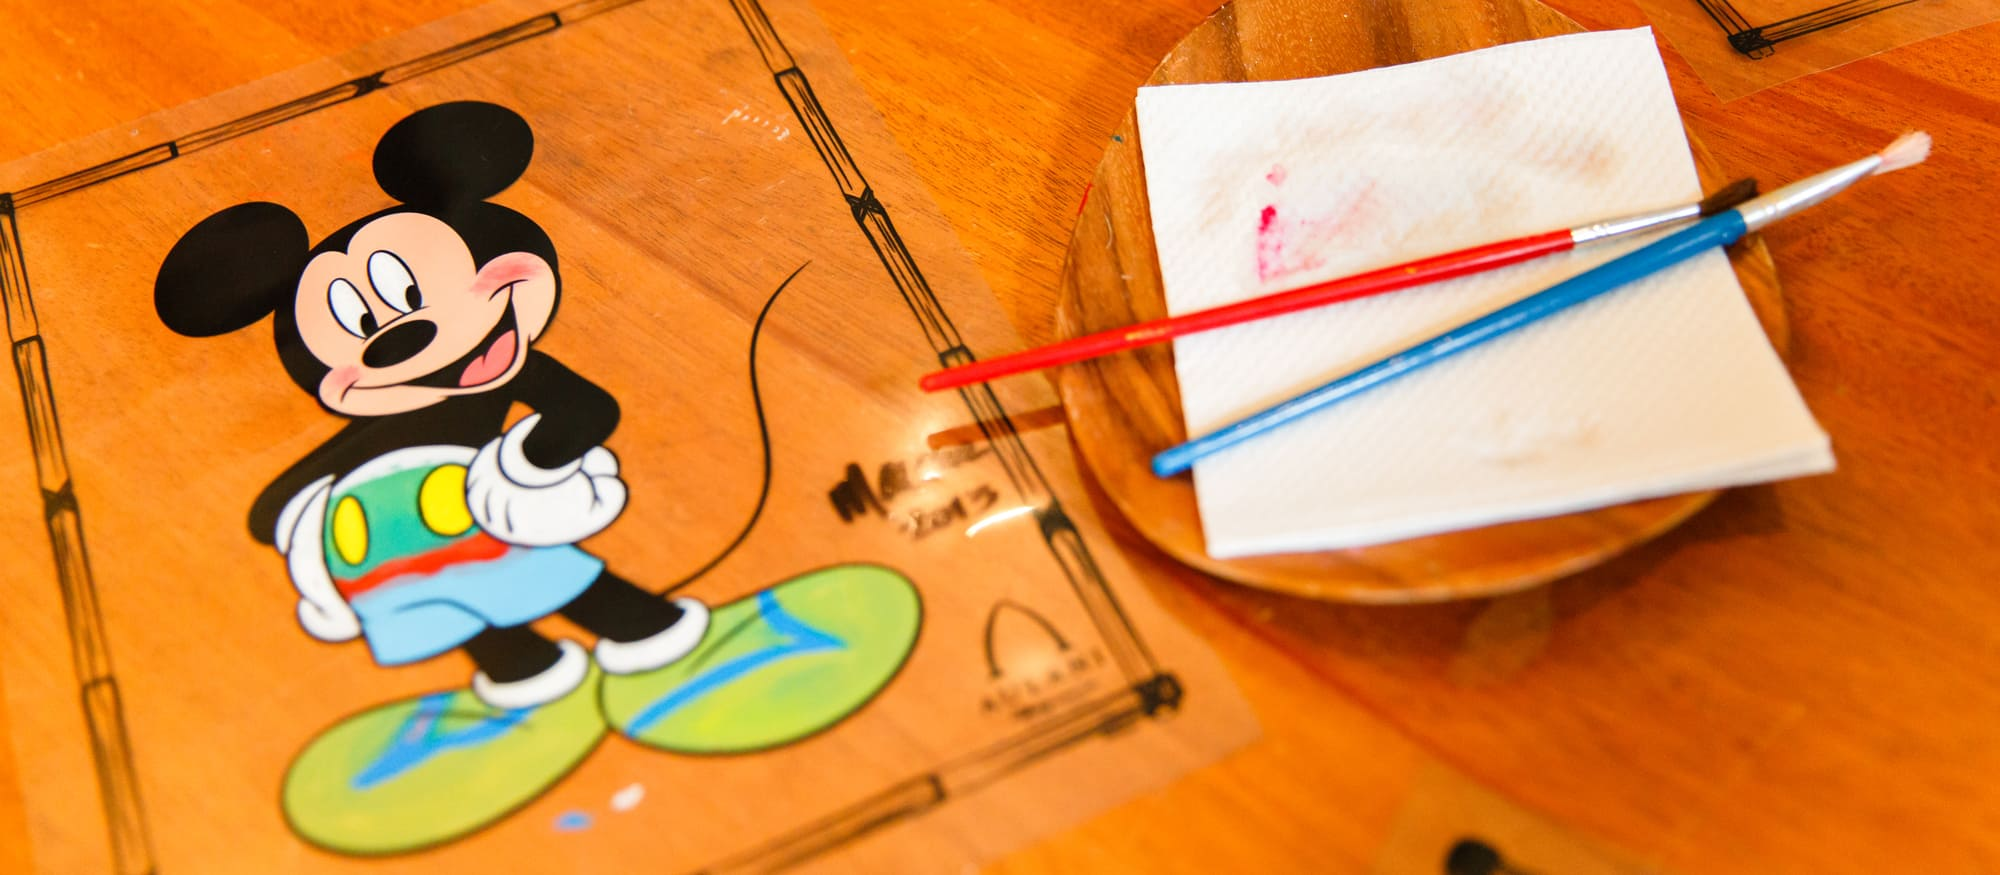 An illustration of Mickey Mouse on a wood surface adjacent to a dish with paintbrushes resting on a napkin